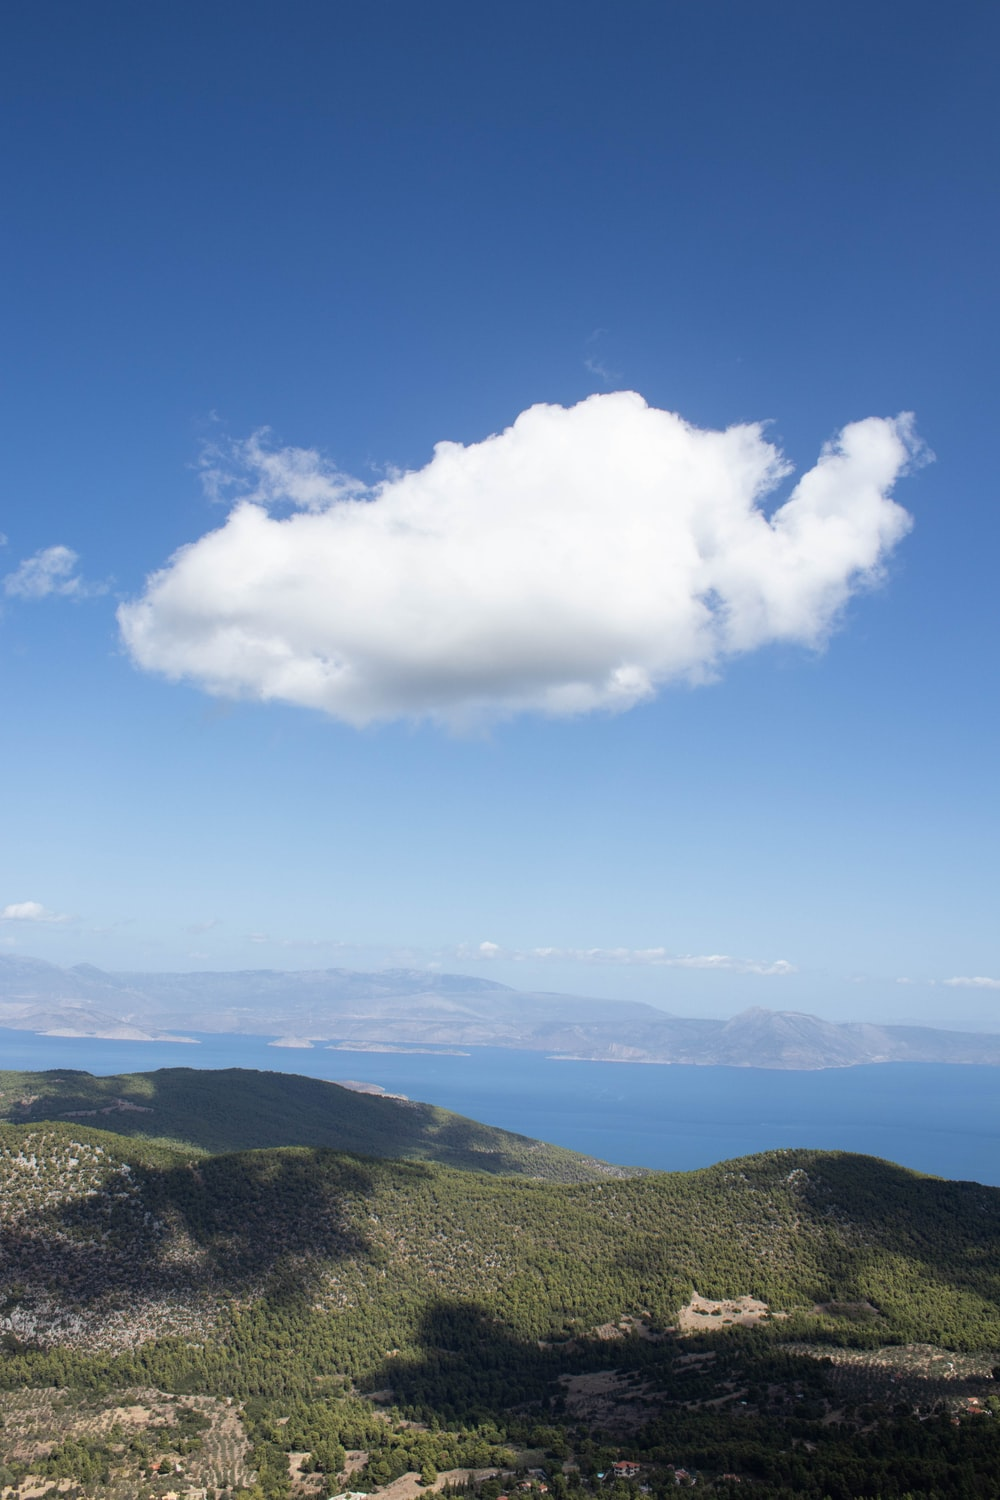 green mountains under blue sky and white clouds during daytime